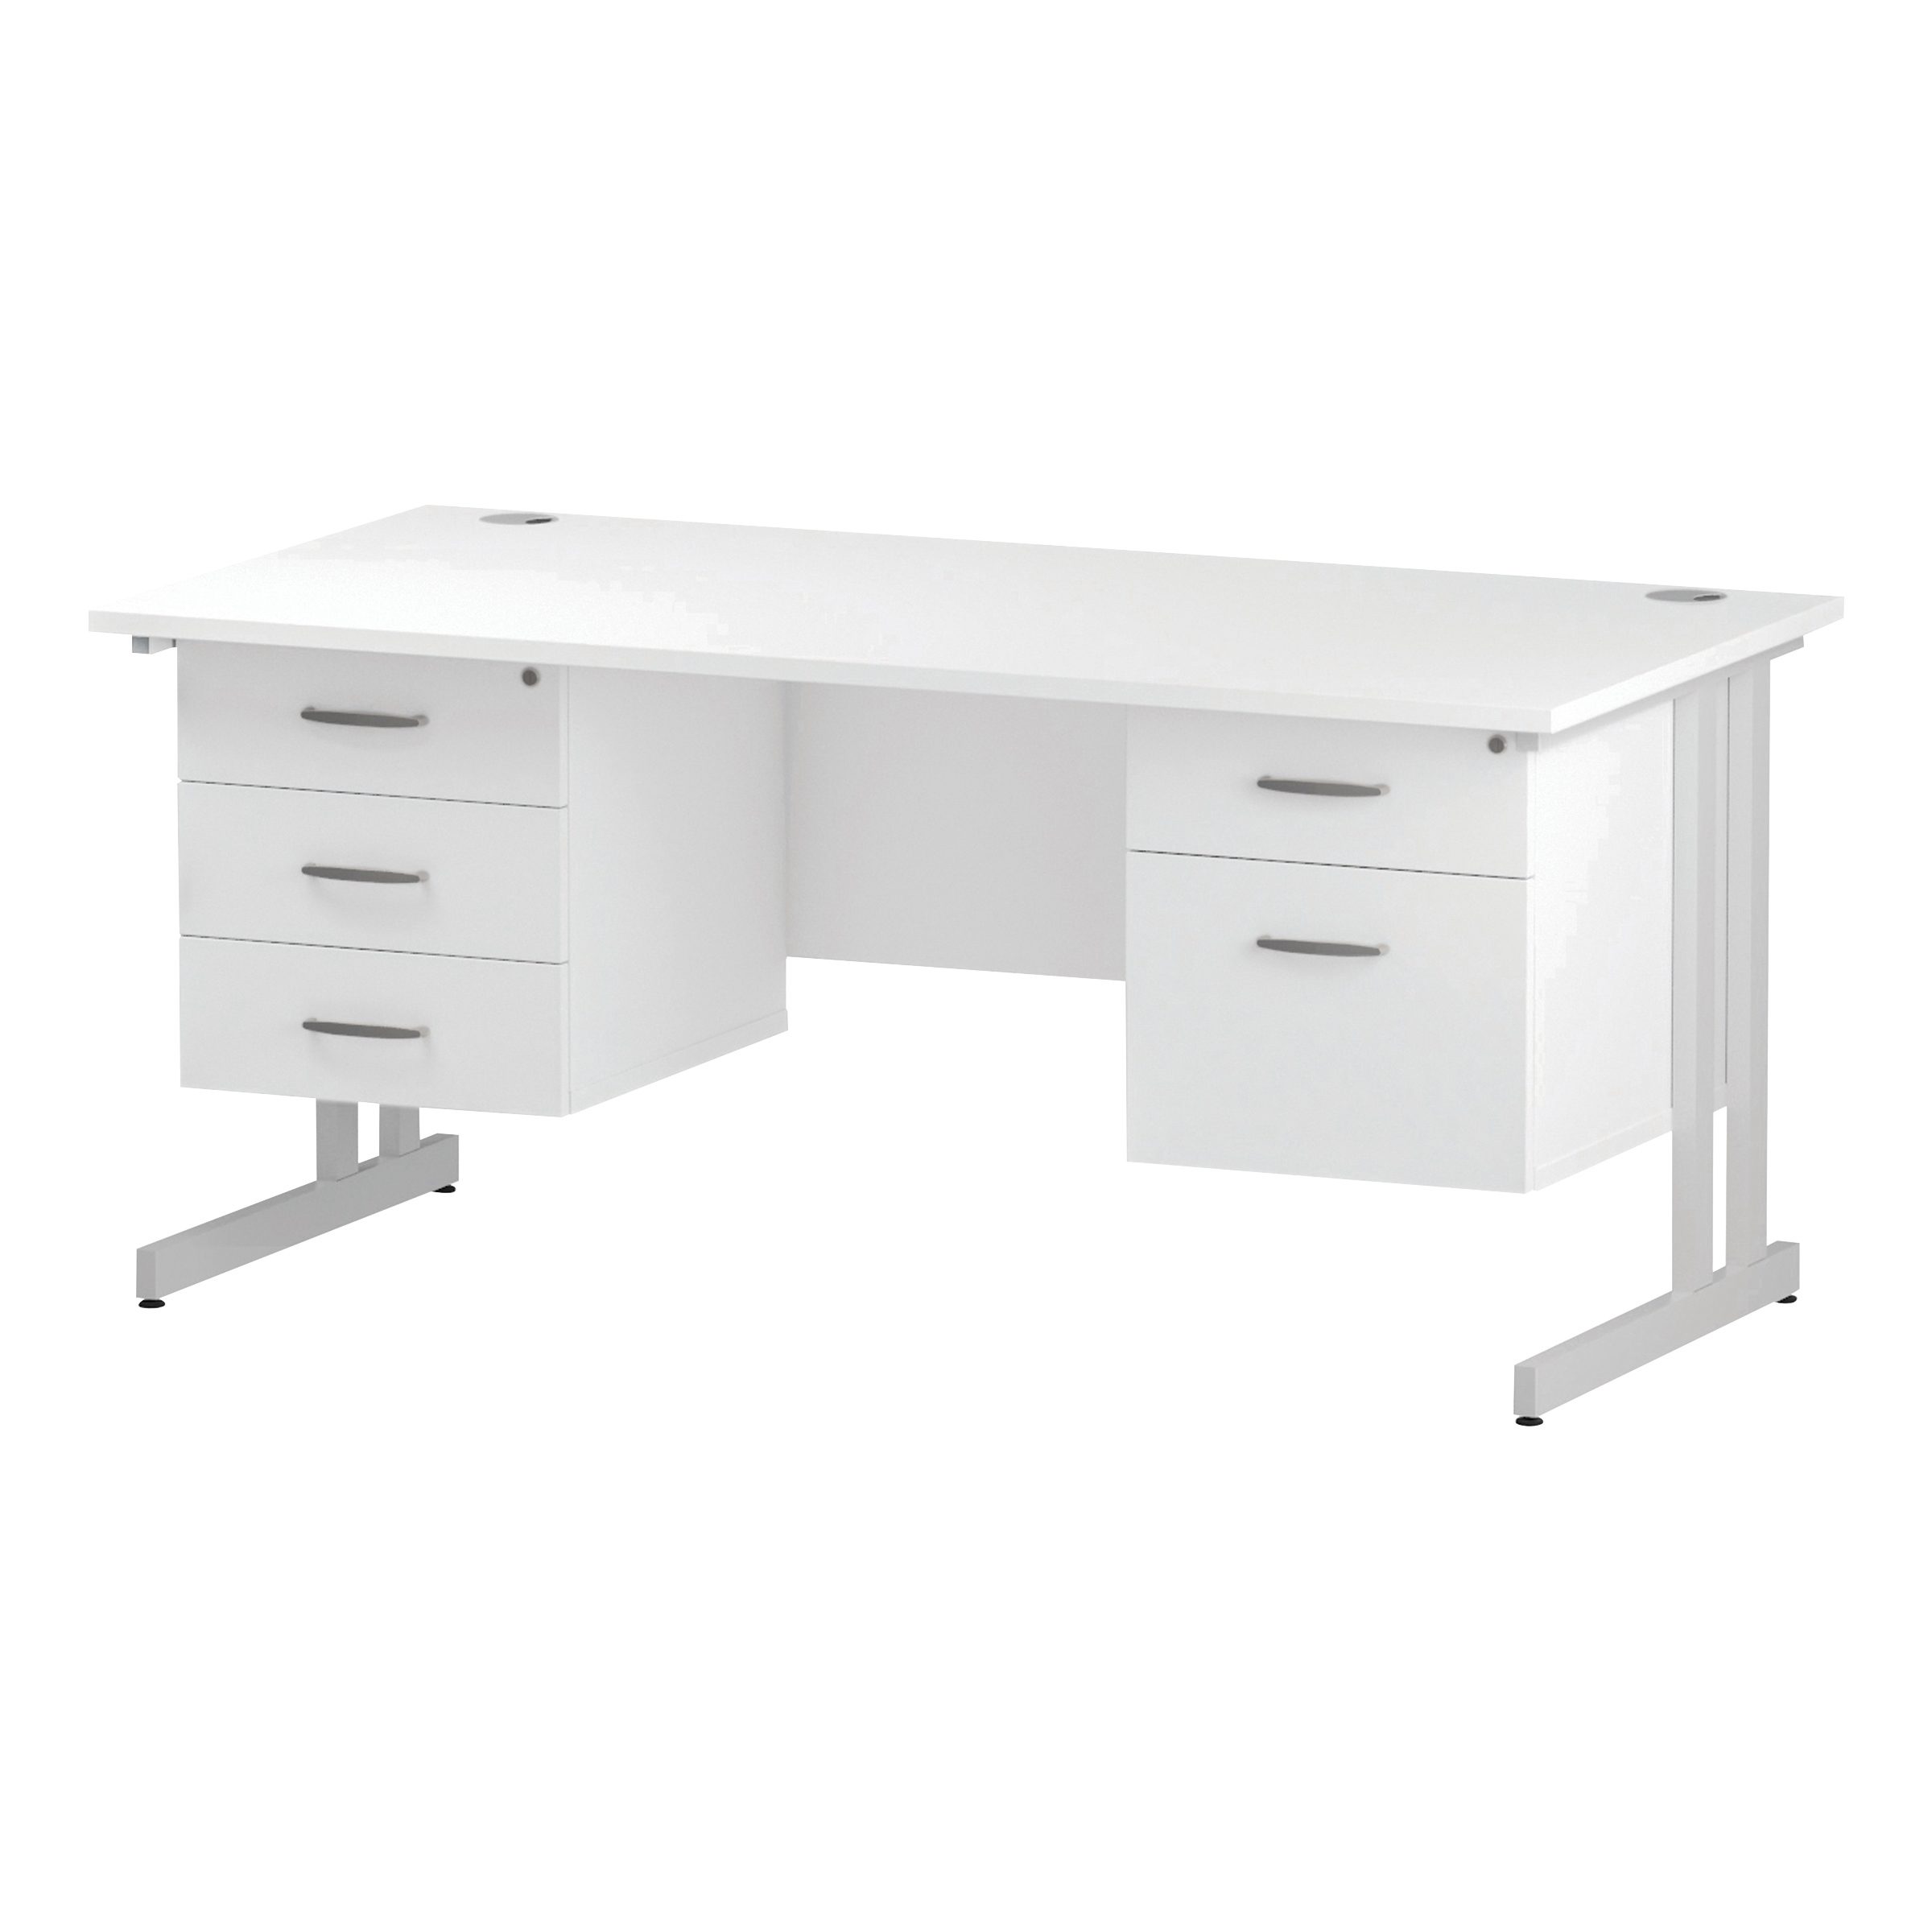 Trexus Rectangular Desk White Cantilever Leg 1600x800mm Double Fixed Ped 2&3 Drawers White Ref I002243